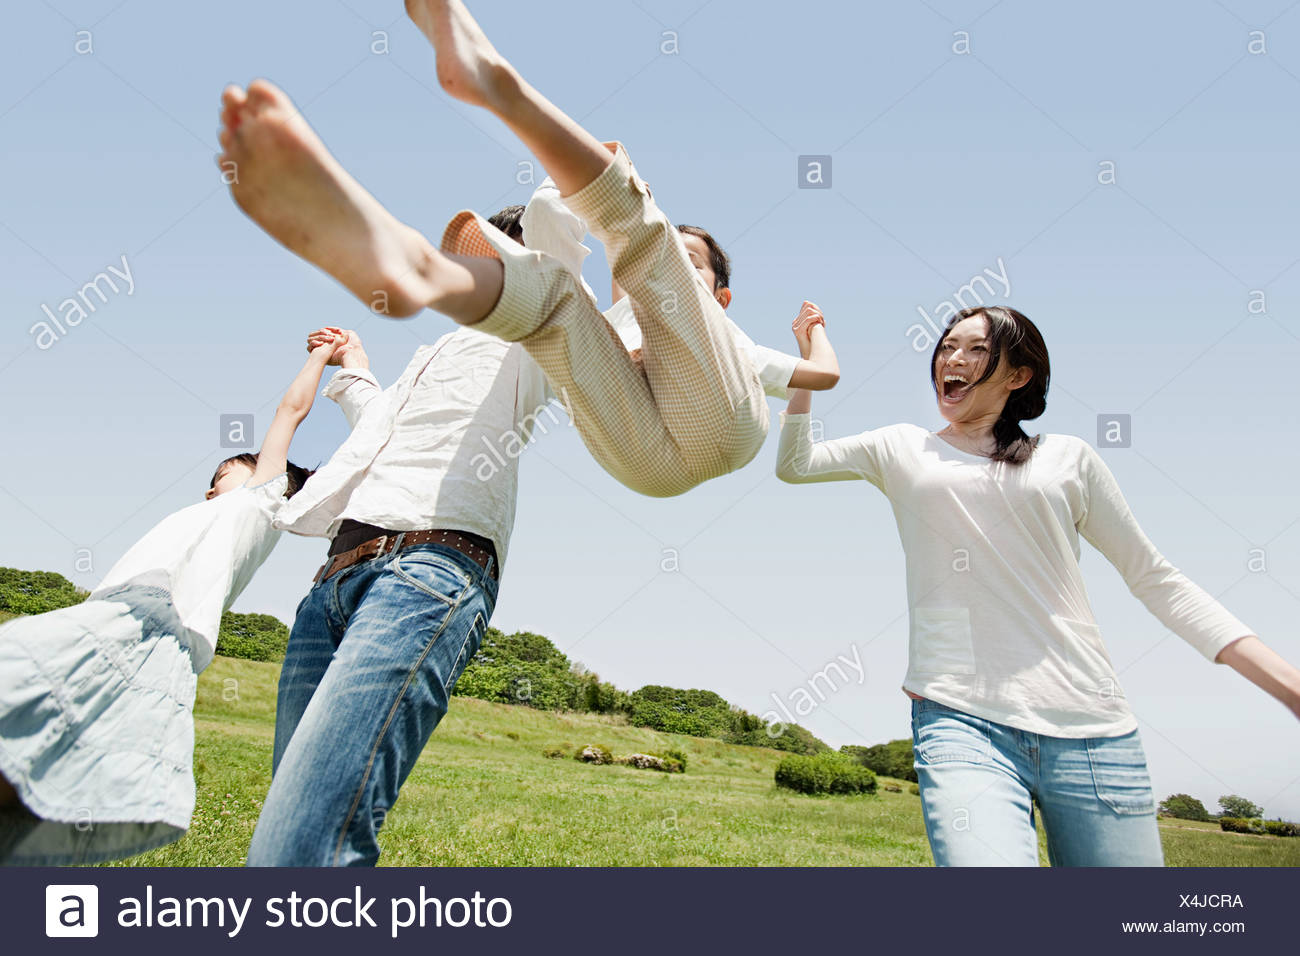 Parents lifting son mid air - Stock Image